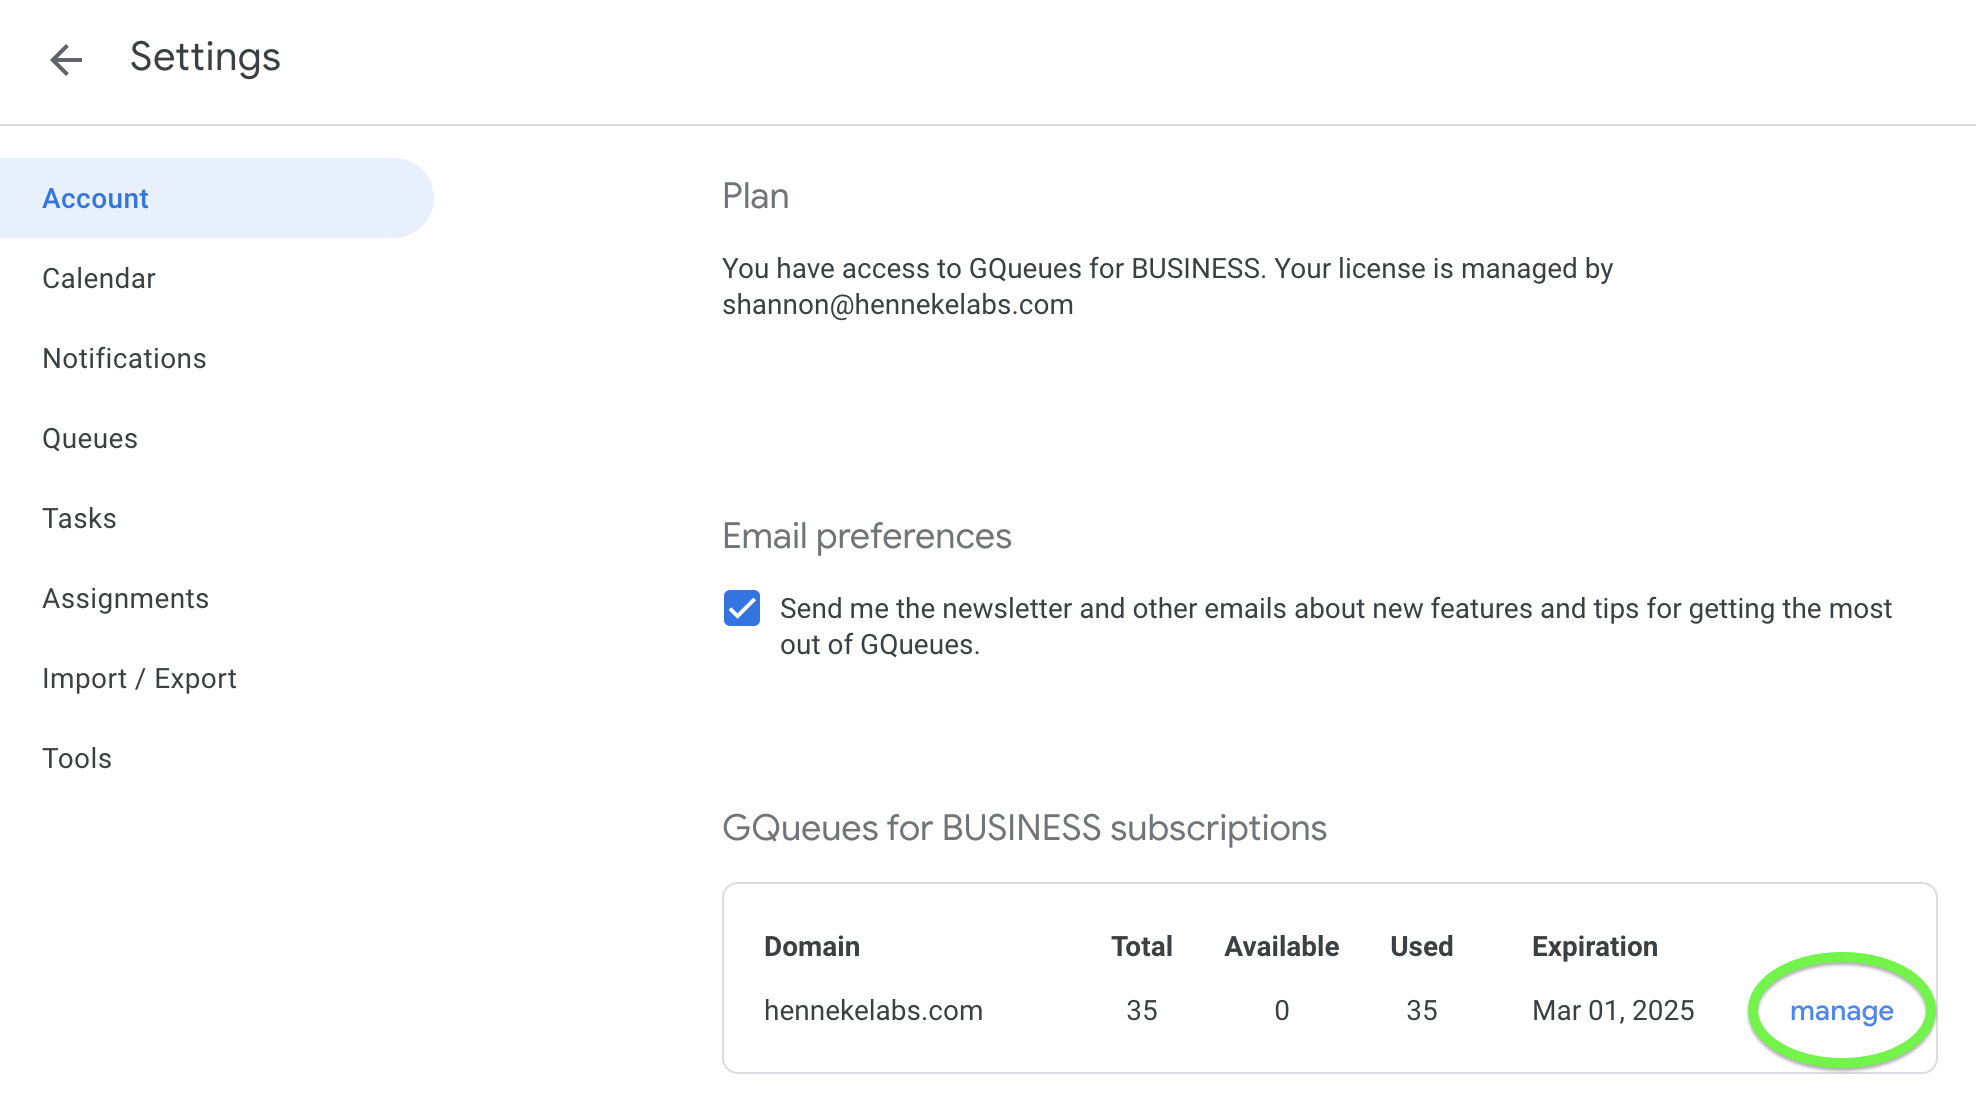 Link to manage GQueues for BUSINESS subscription